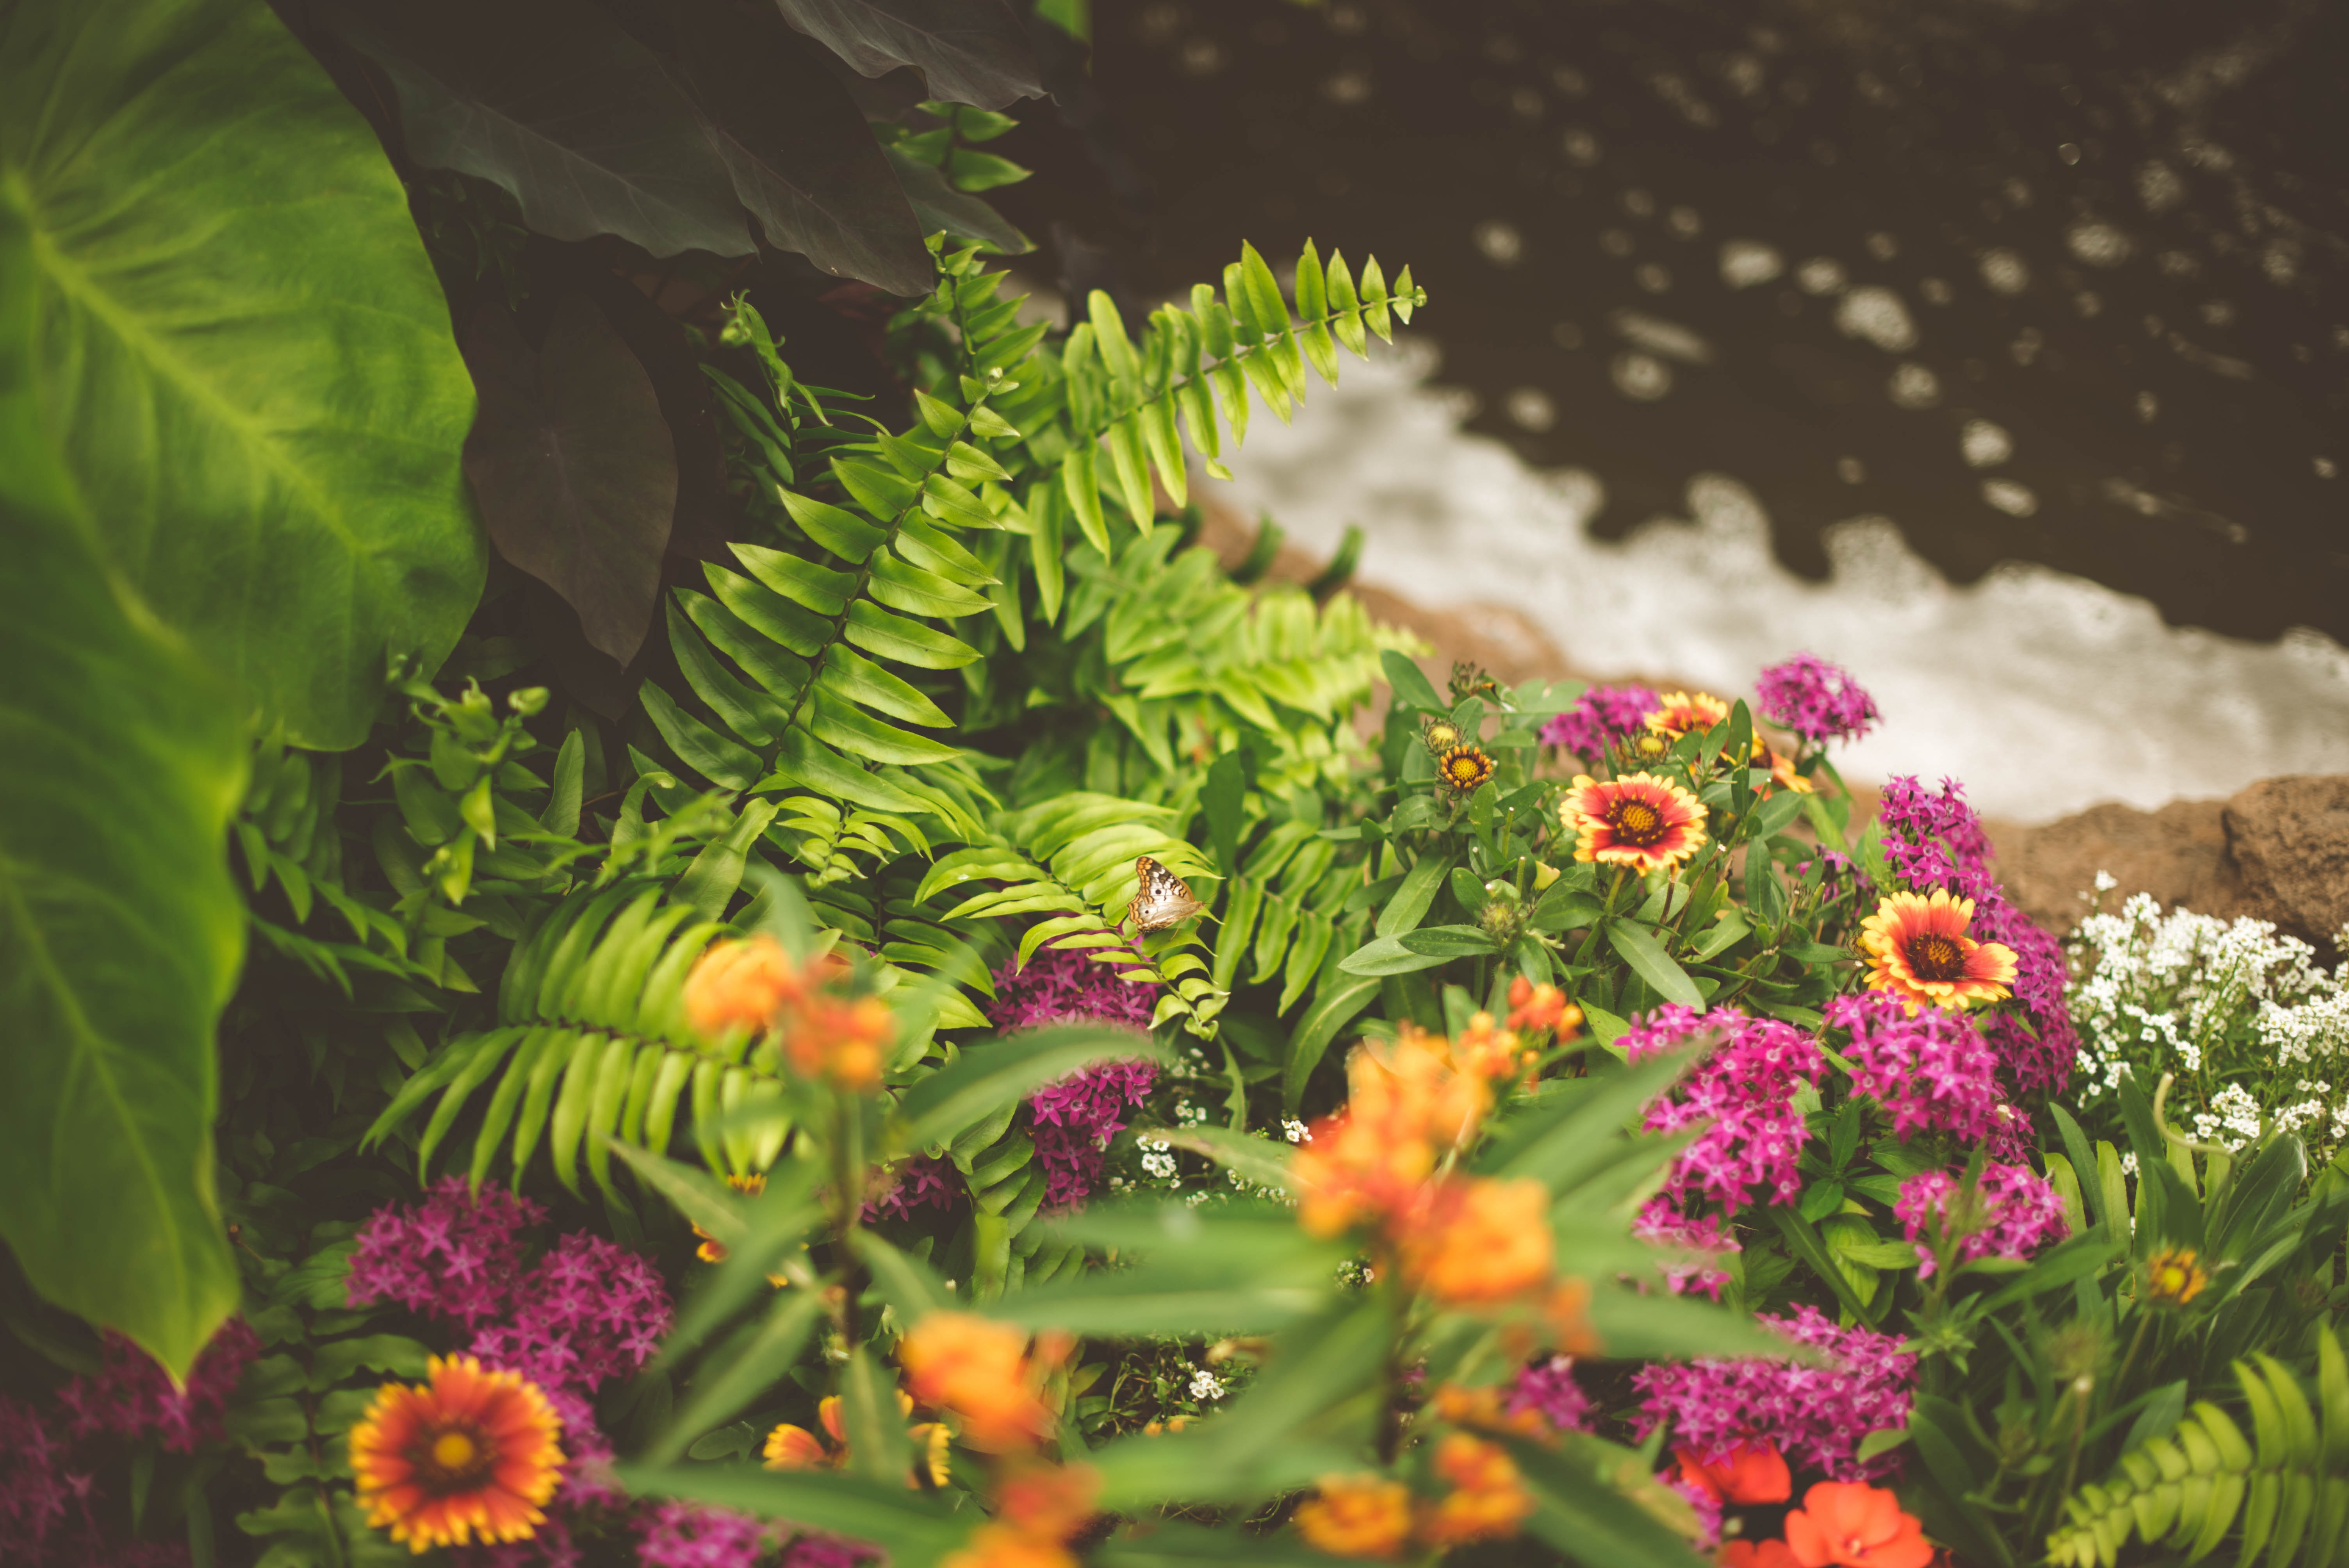 5 Best Soil Amendments For Stunning Gardens and Trees